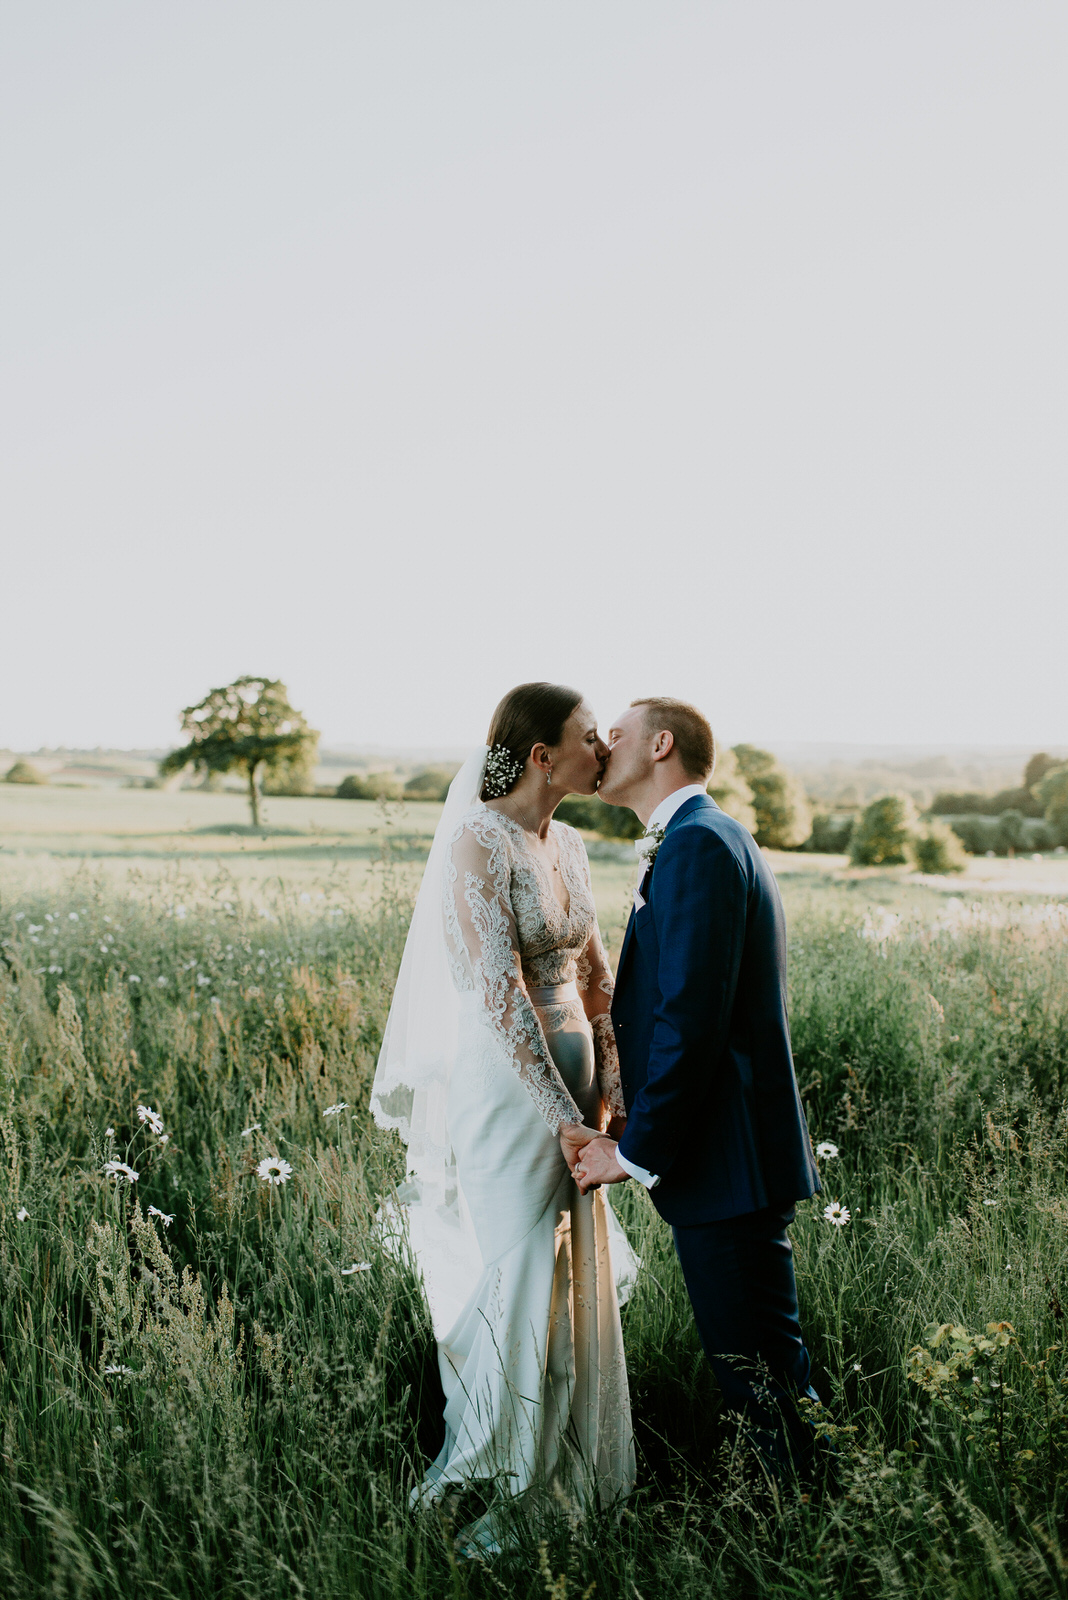 Intimate_Warwickshire_Countryside_Wedding_UK_85.JPG